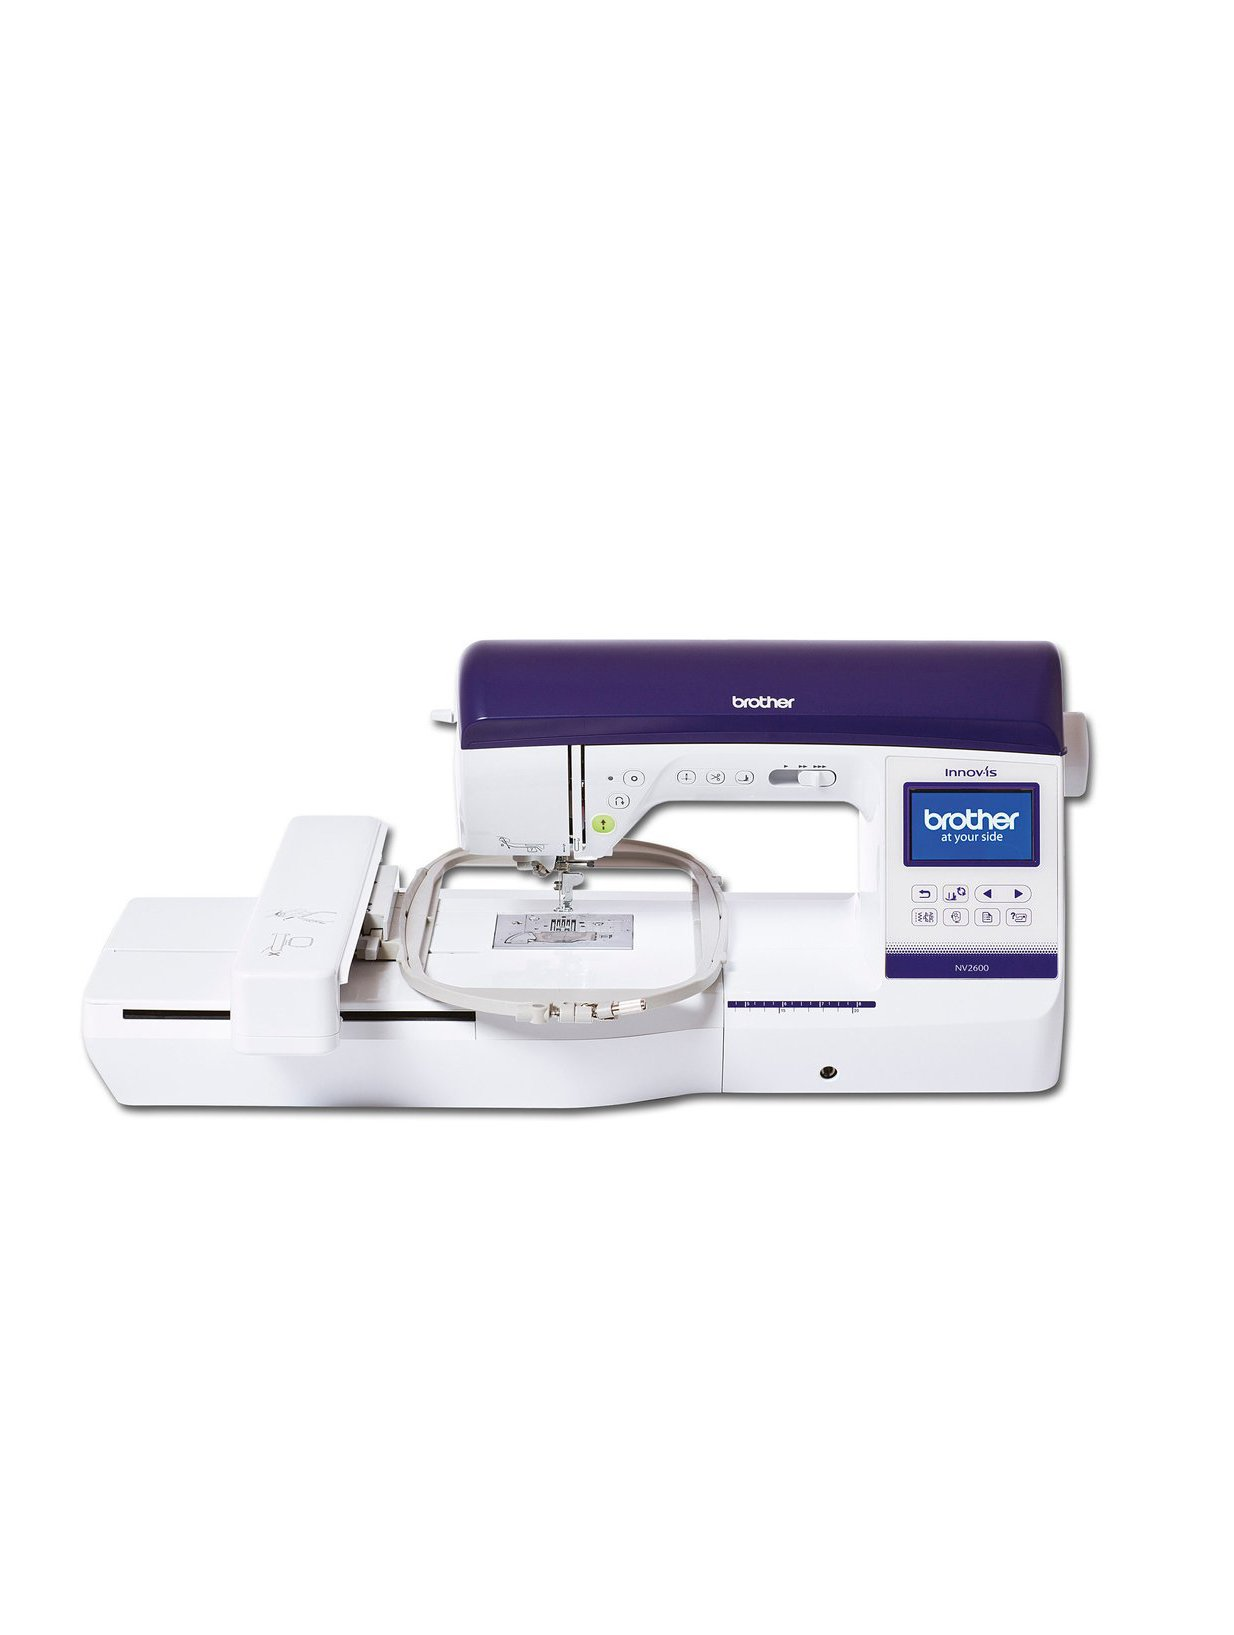 Brother NV2600 Innov-is Sewing Embroidery Machine Cheap Discount Designs Frame Hoops Table Stitches Speed